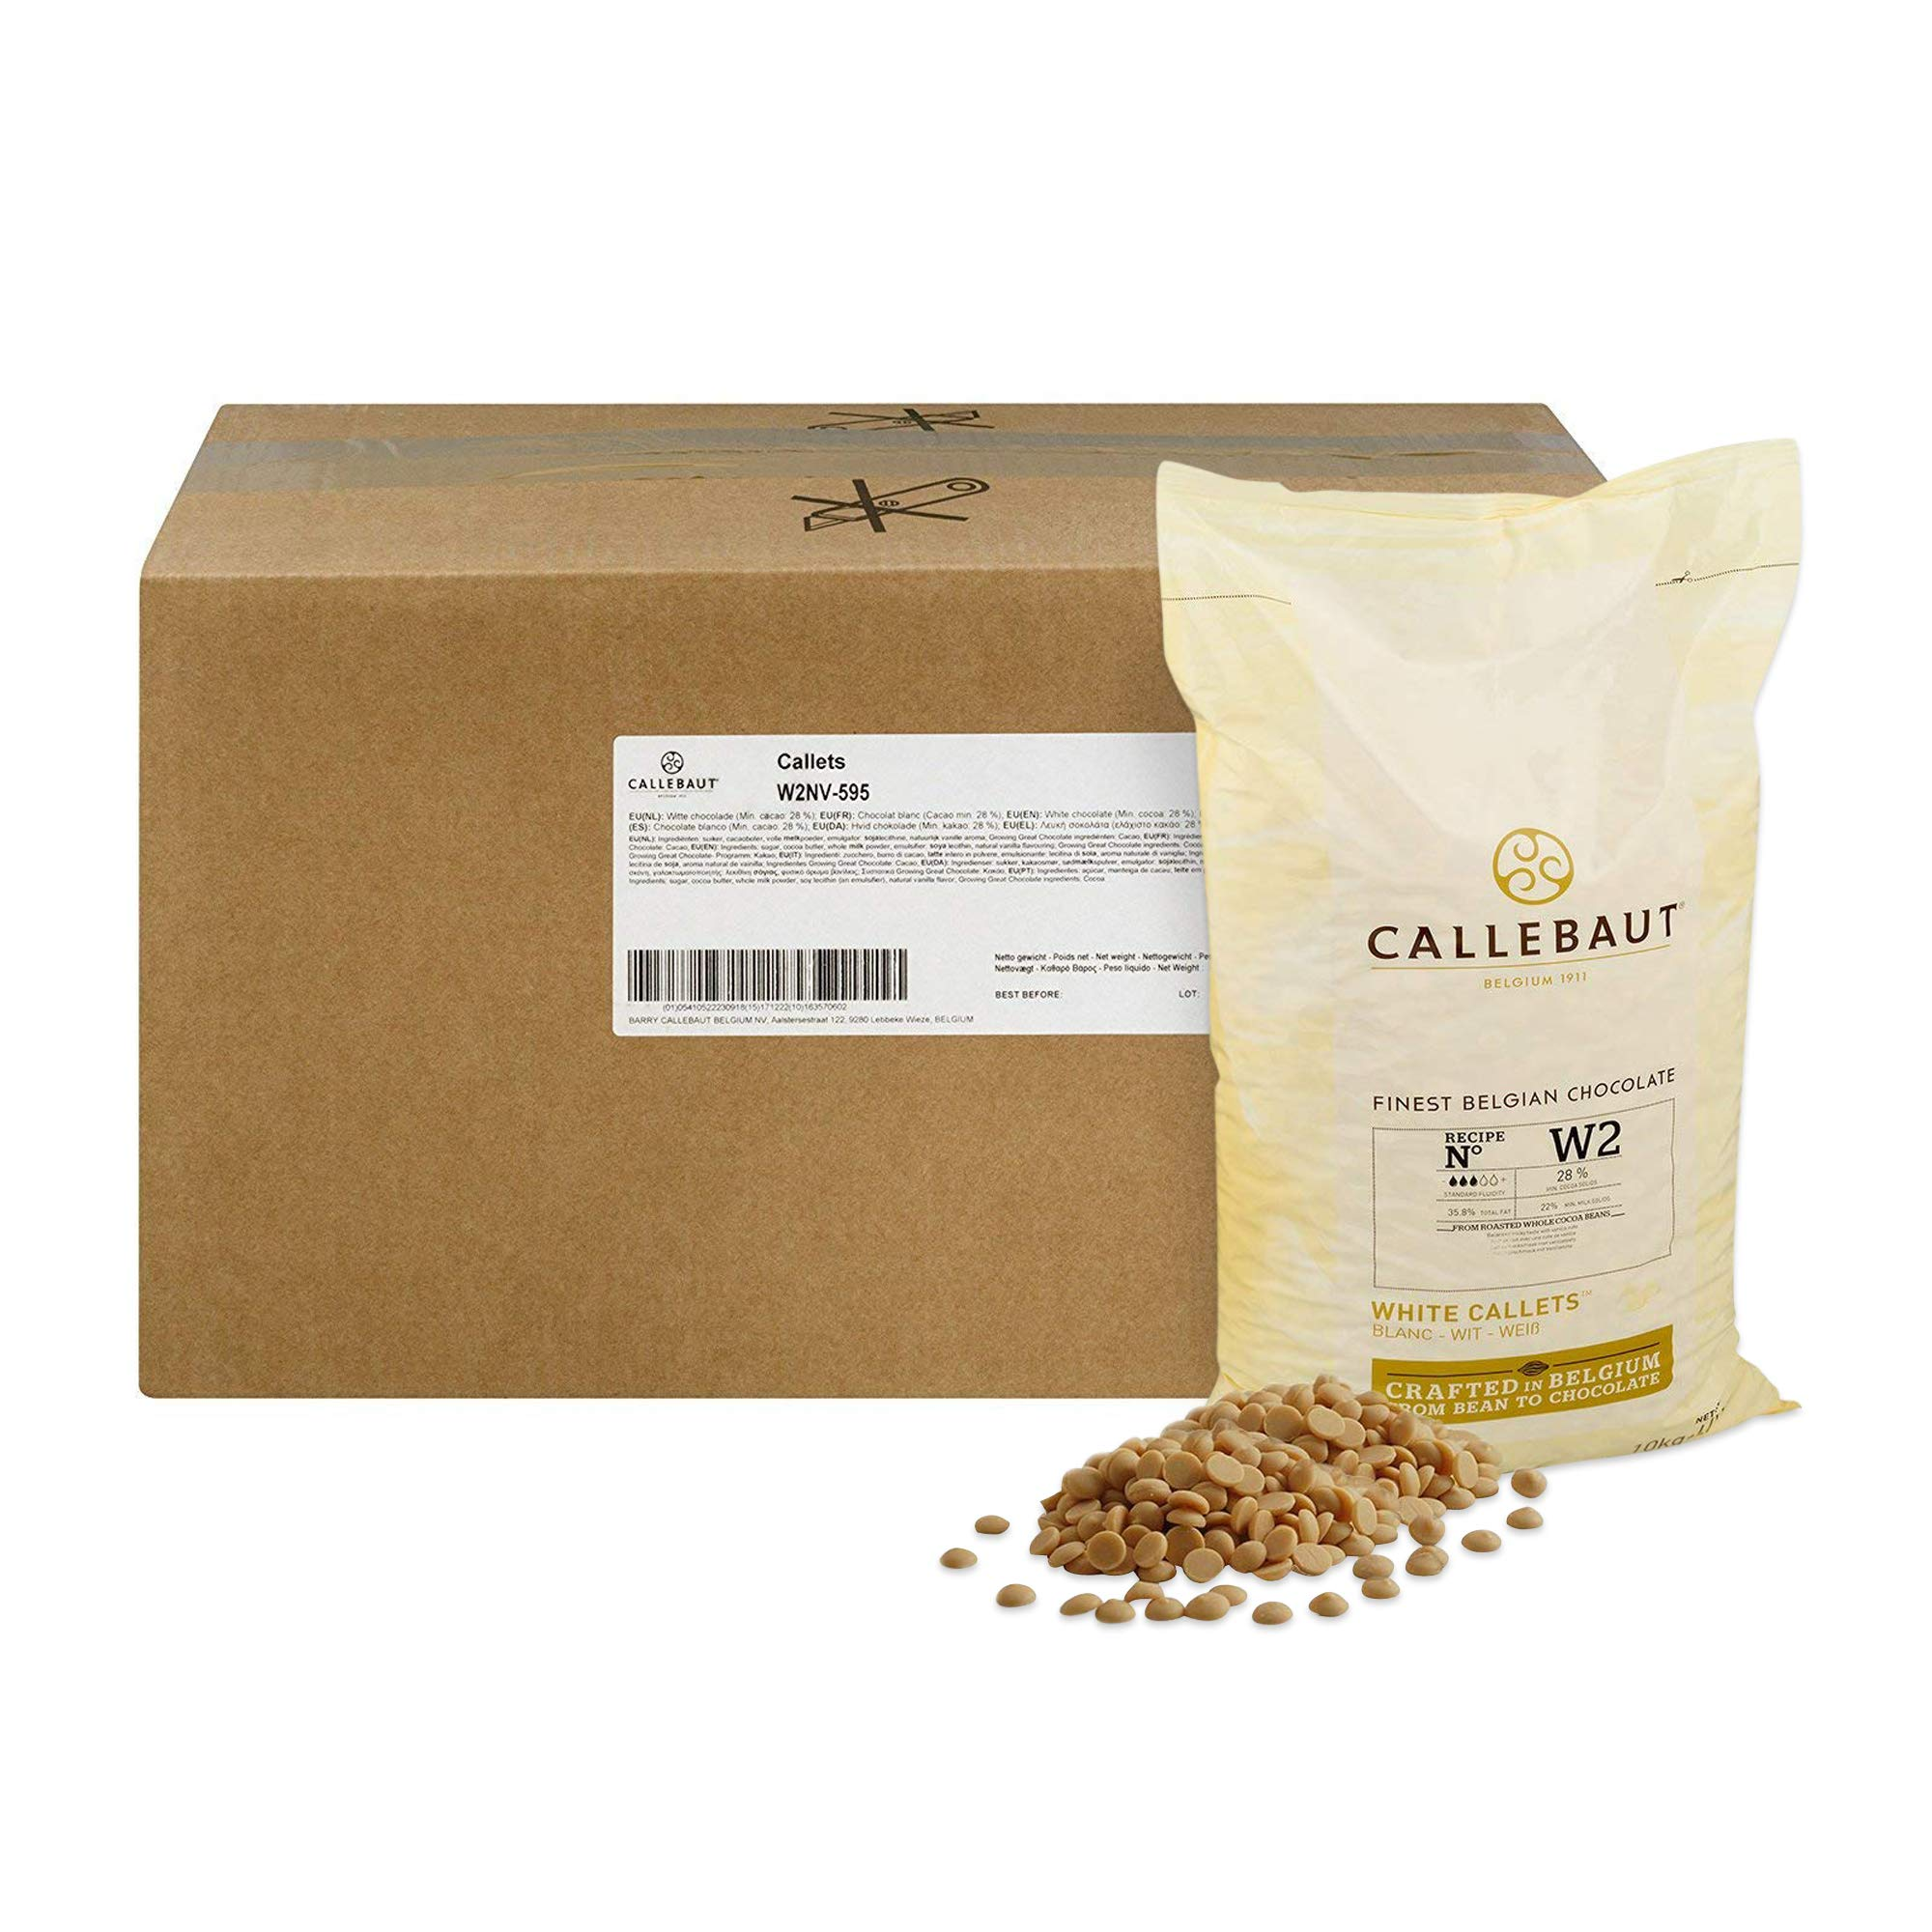 Callebaut Belgian White Baking Chocolate Callets - 29.5% Cocoa Butter, 0% Fat Free Cocoa, 6.3% Milk Fat, 16.7% Fat Free Milk - Good For Cakes, Mousse, Truffle, Fillings & Dipping - 22 Lbs